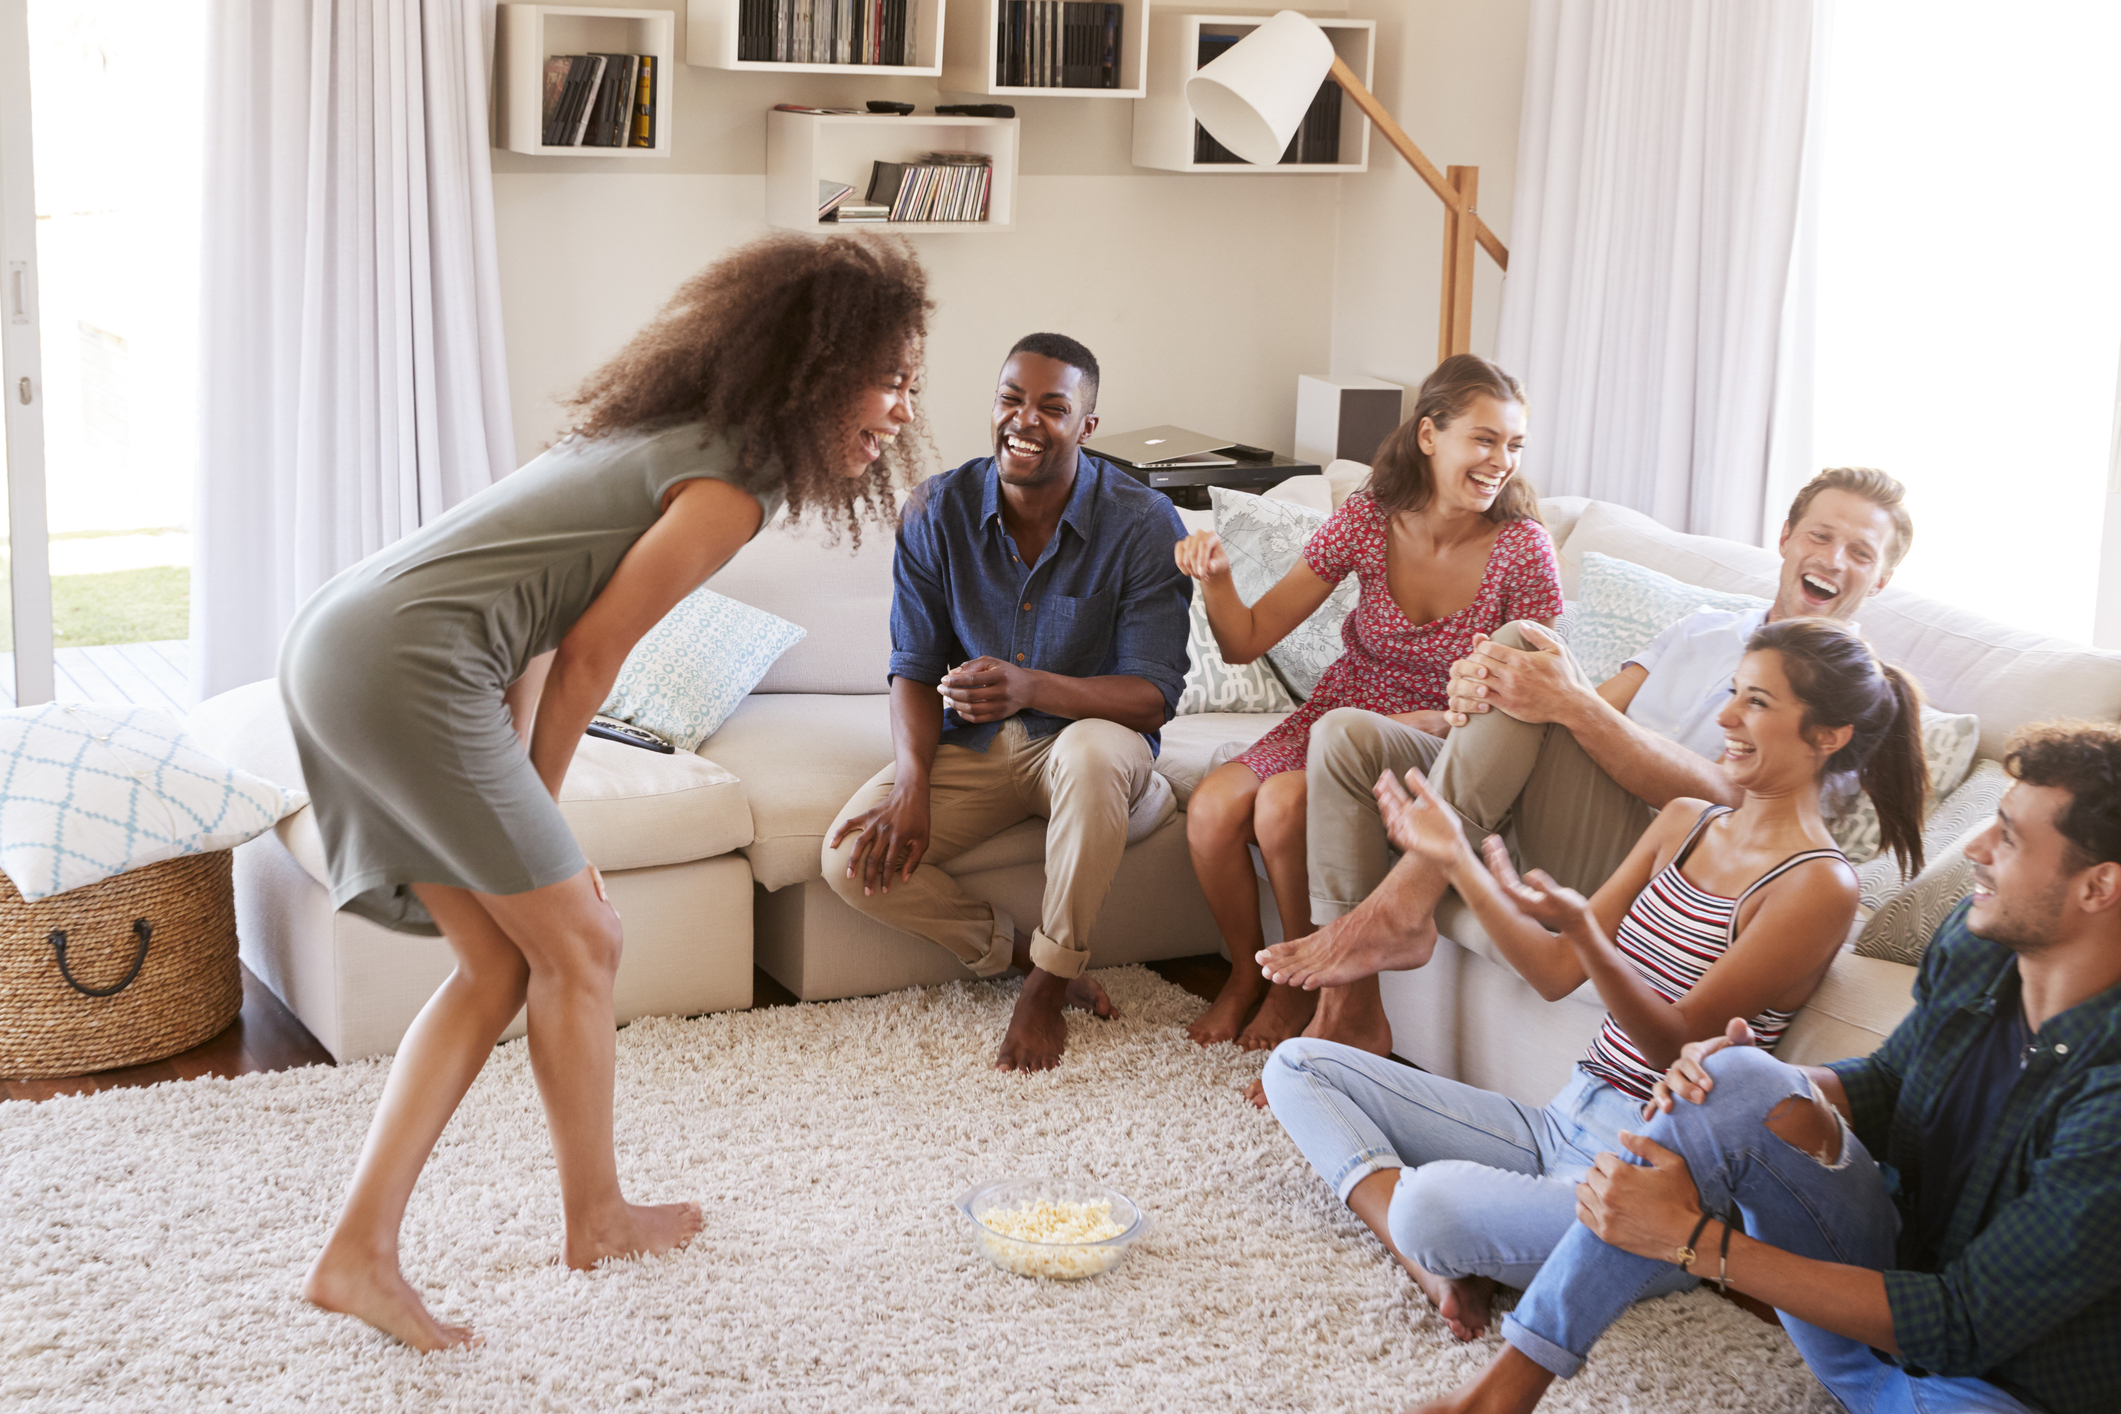 Group Of Friends in apartment Having Fun Playing Charades Together